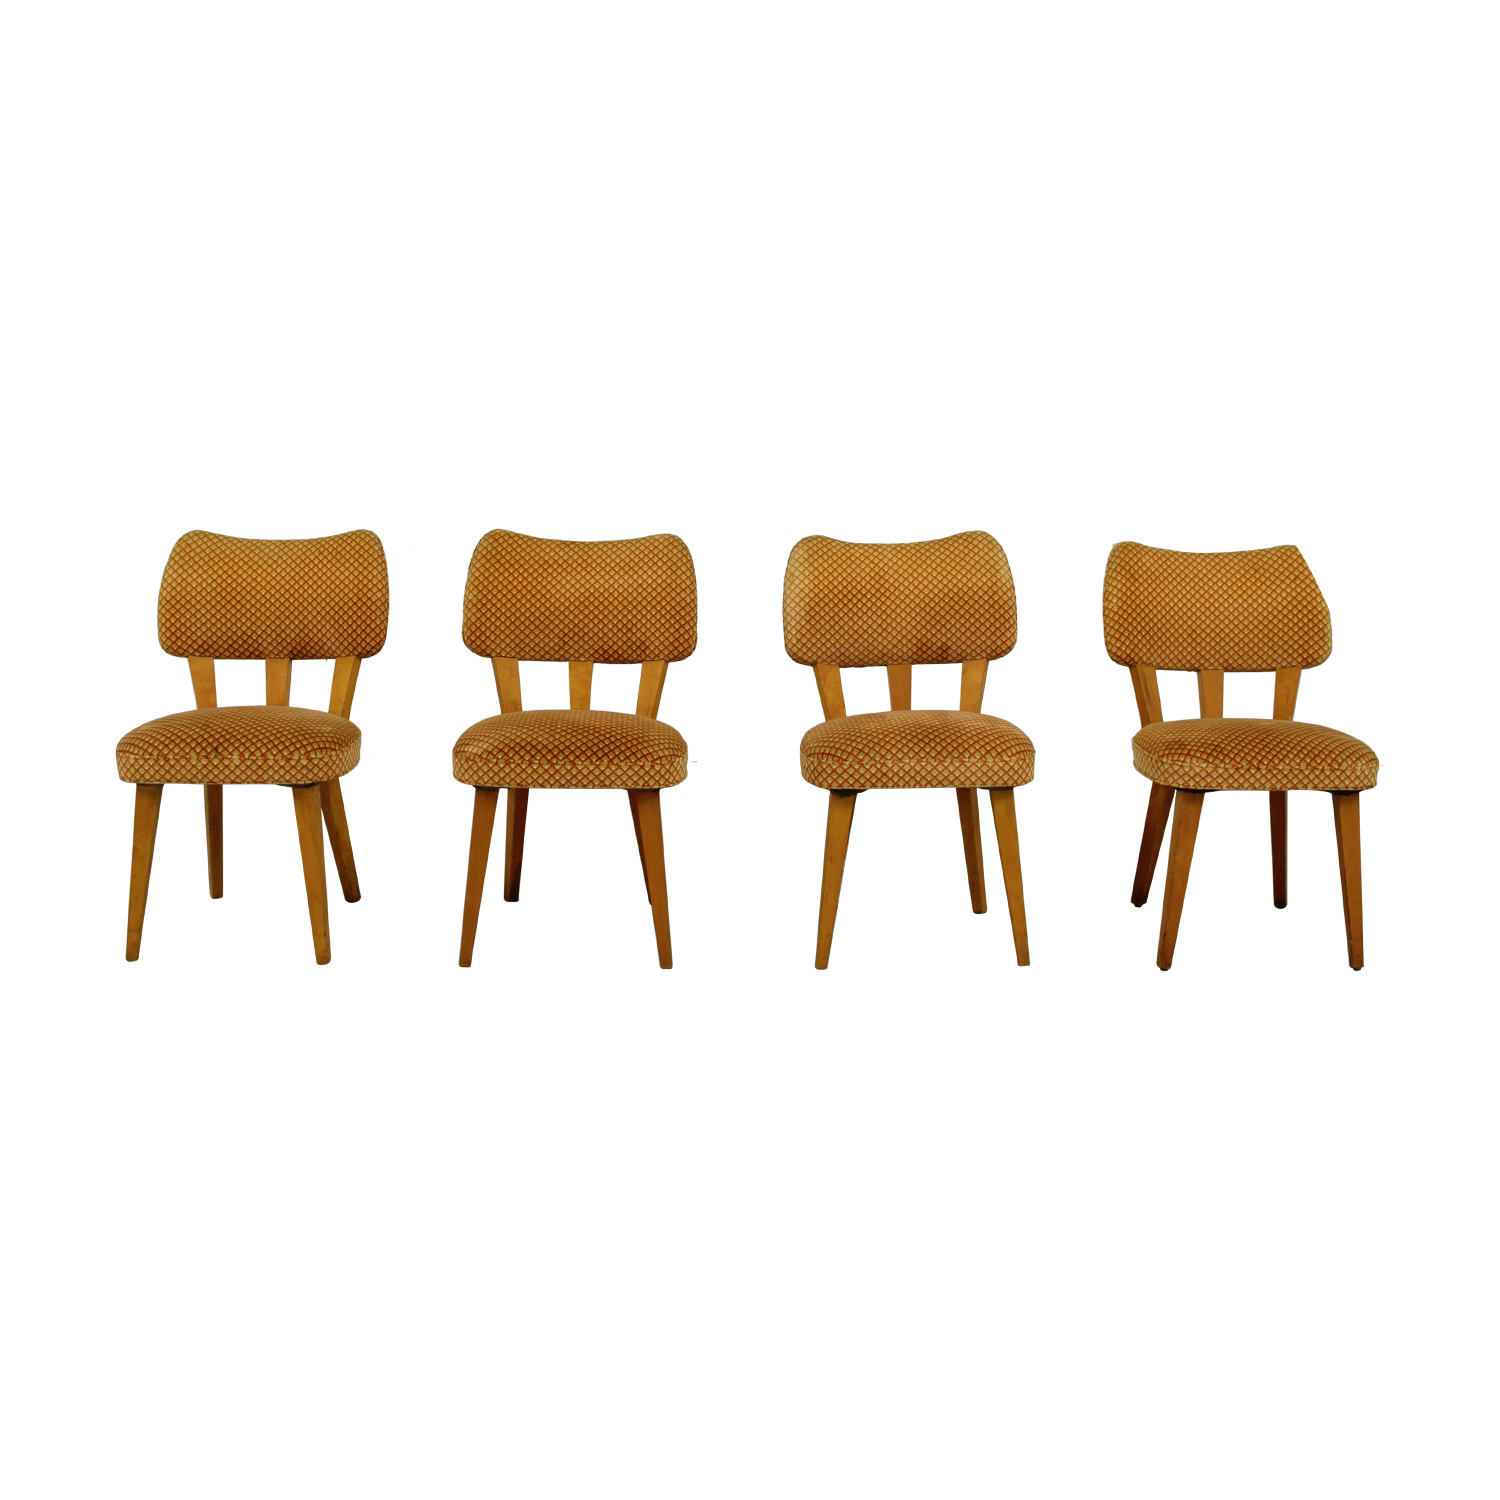 shop  Mid-Century Modern Dining Chairs online